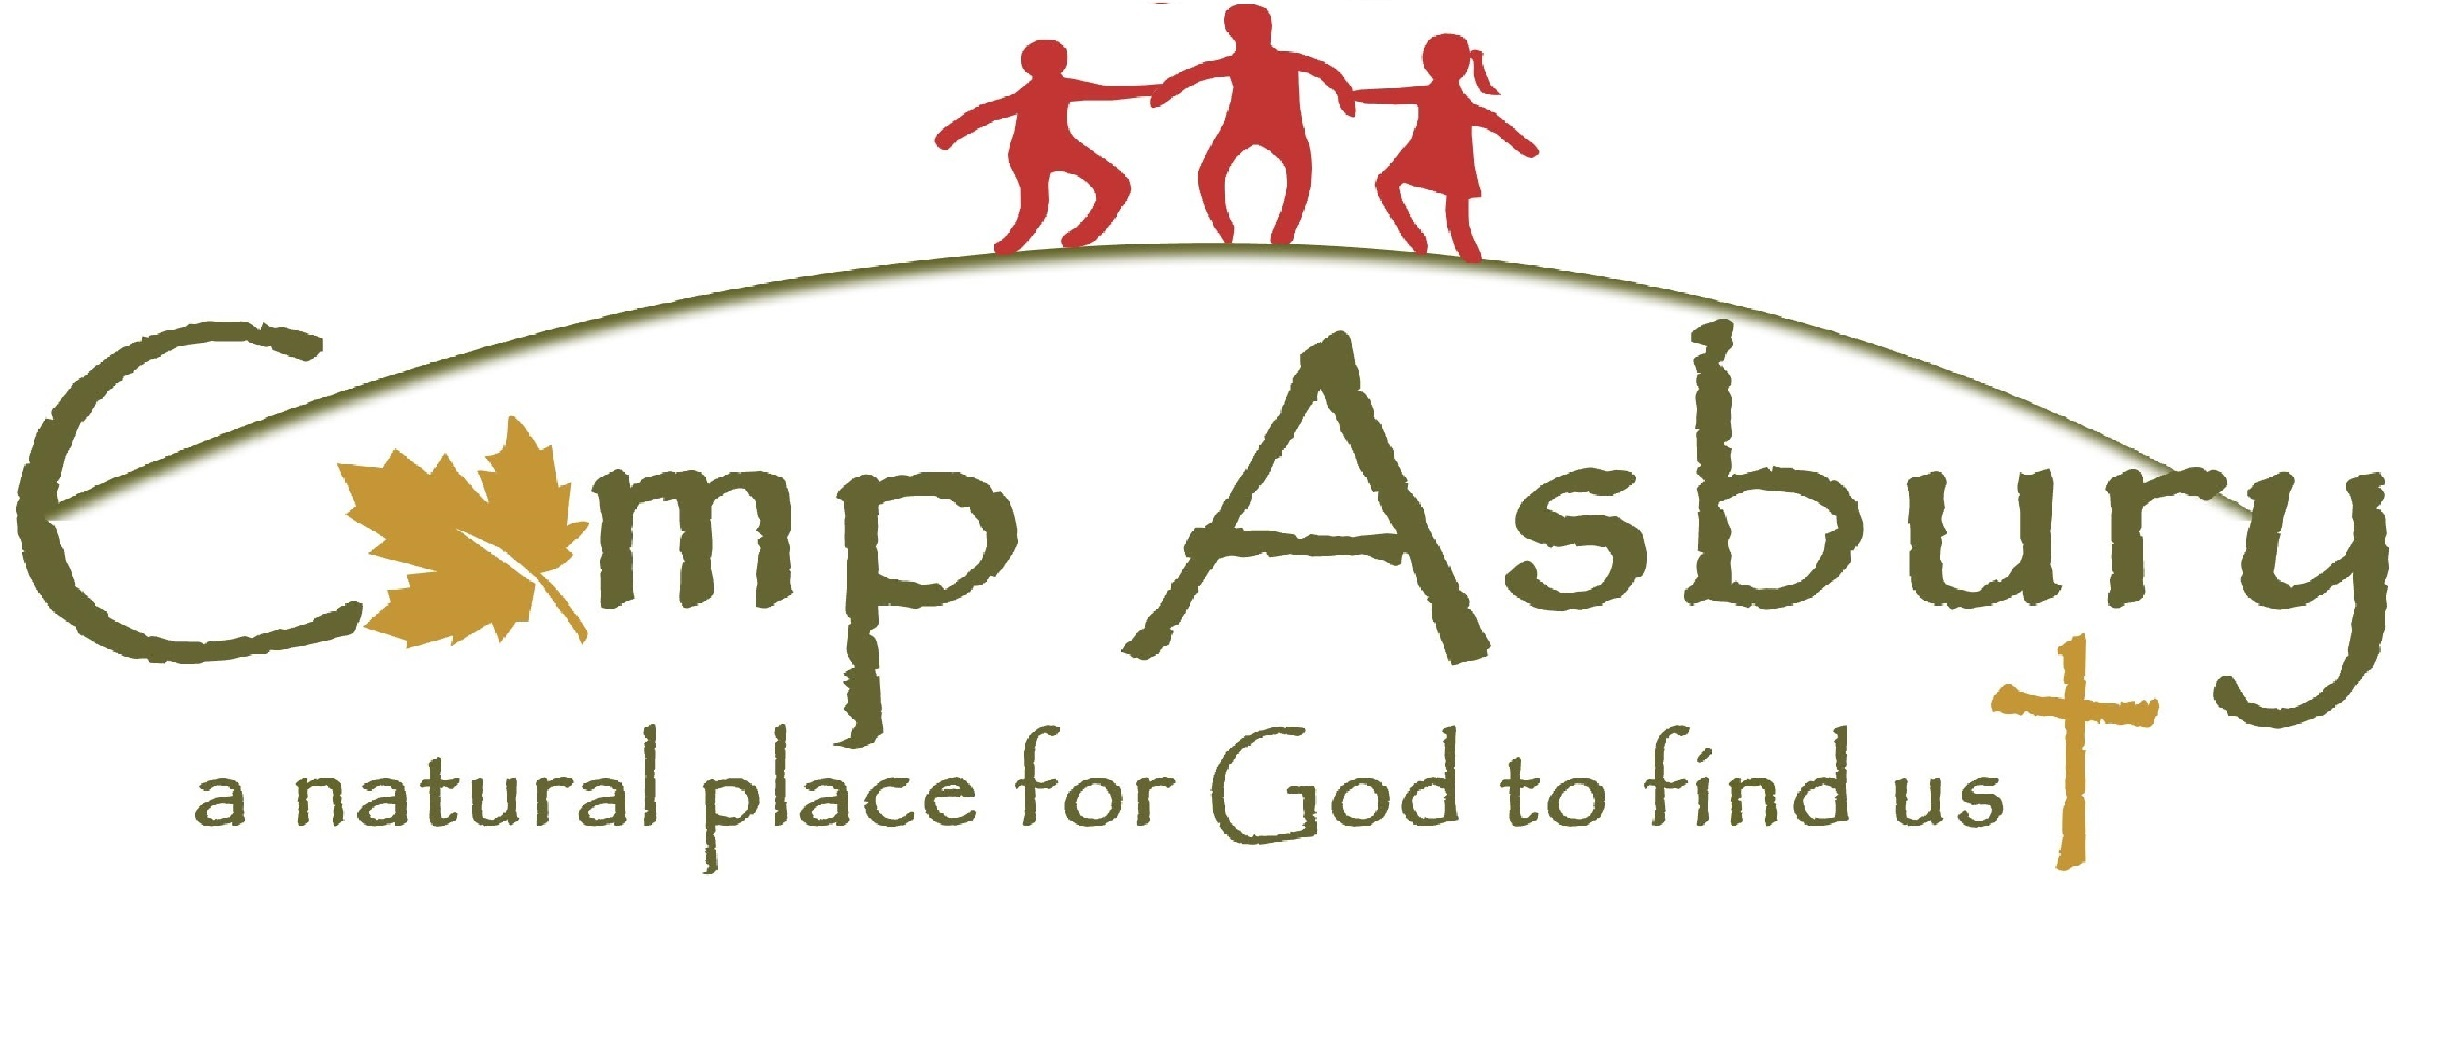 Click Here to check out Camp Asbury